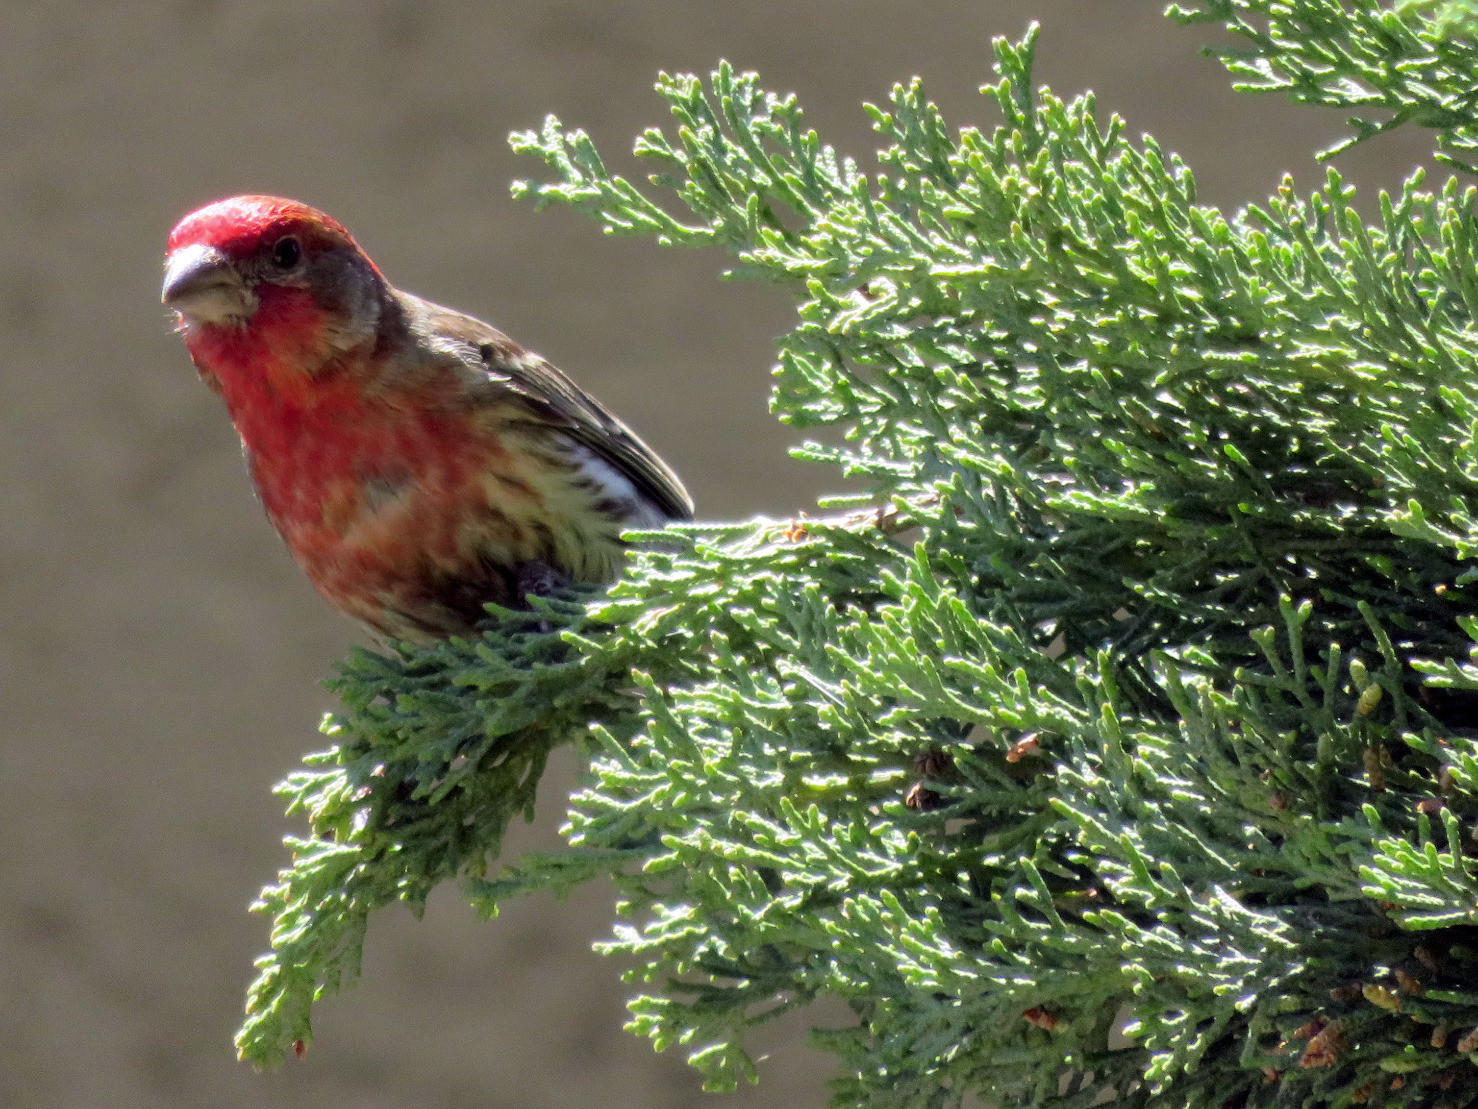 A finch that I spotted practically right outside my door a few weeks ago.